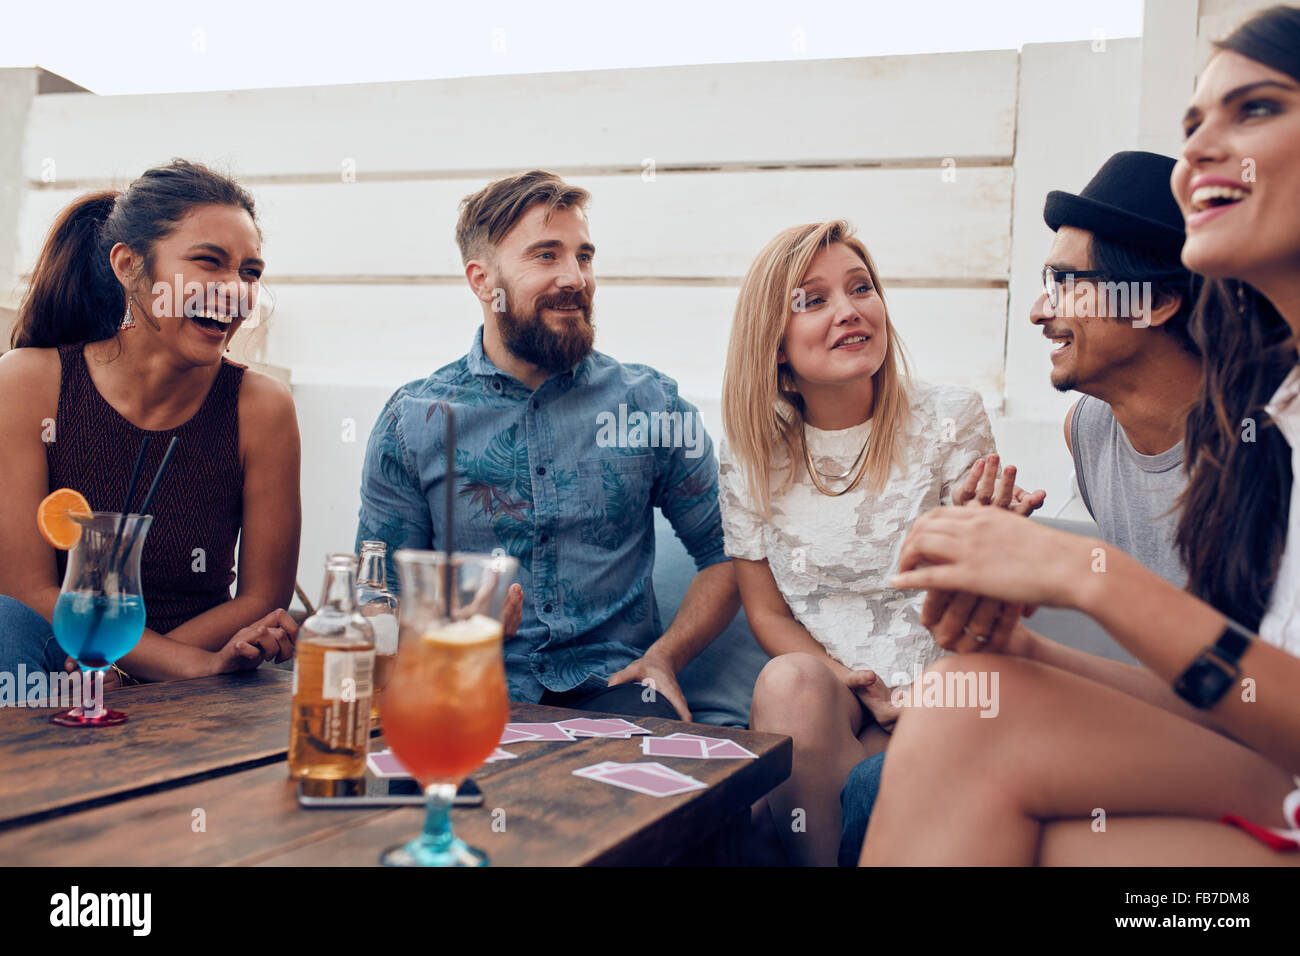 Group of friends relaxing together around a table. Young people hanging out around a table during a party with cocktails - Stock Image